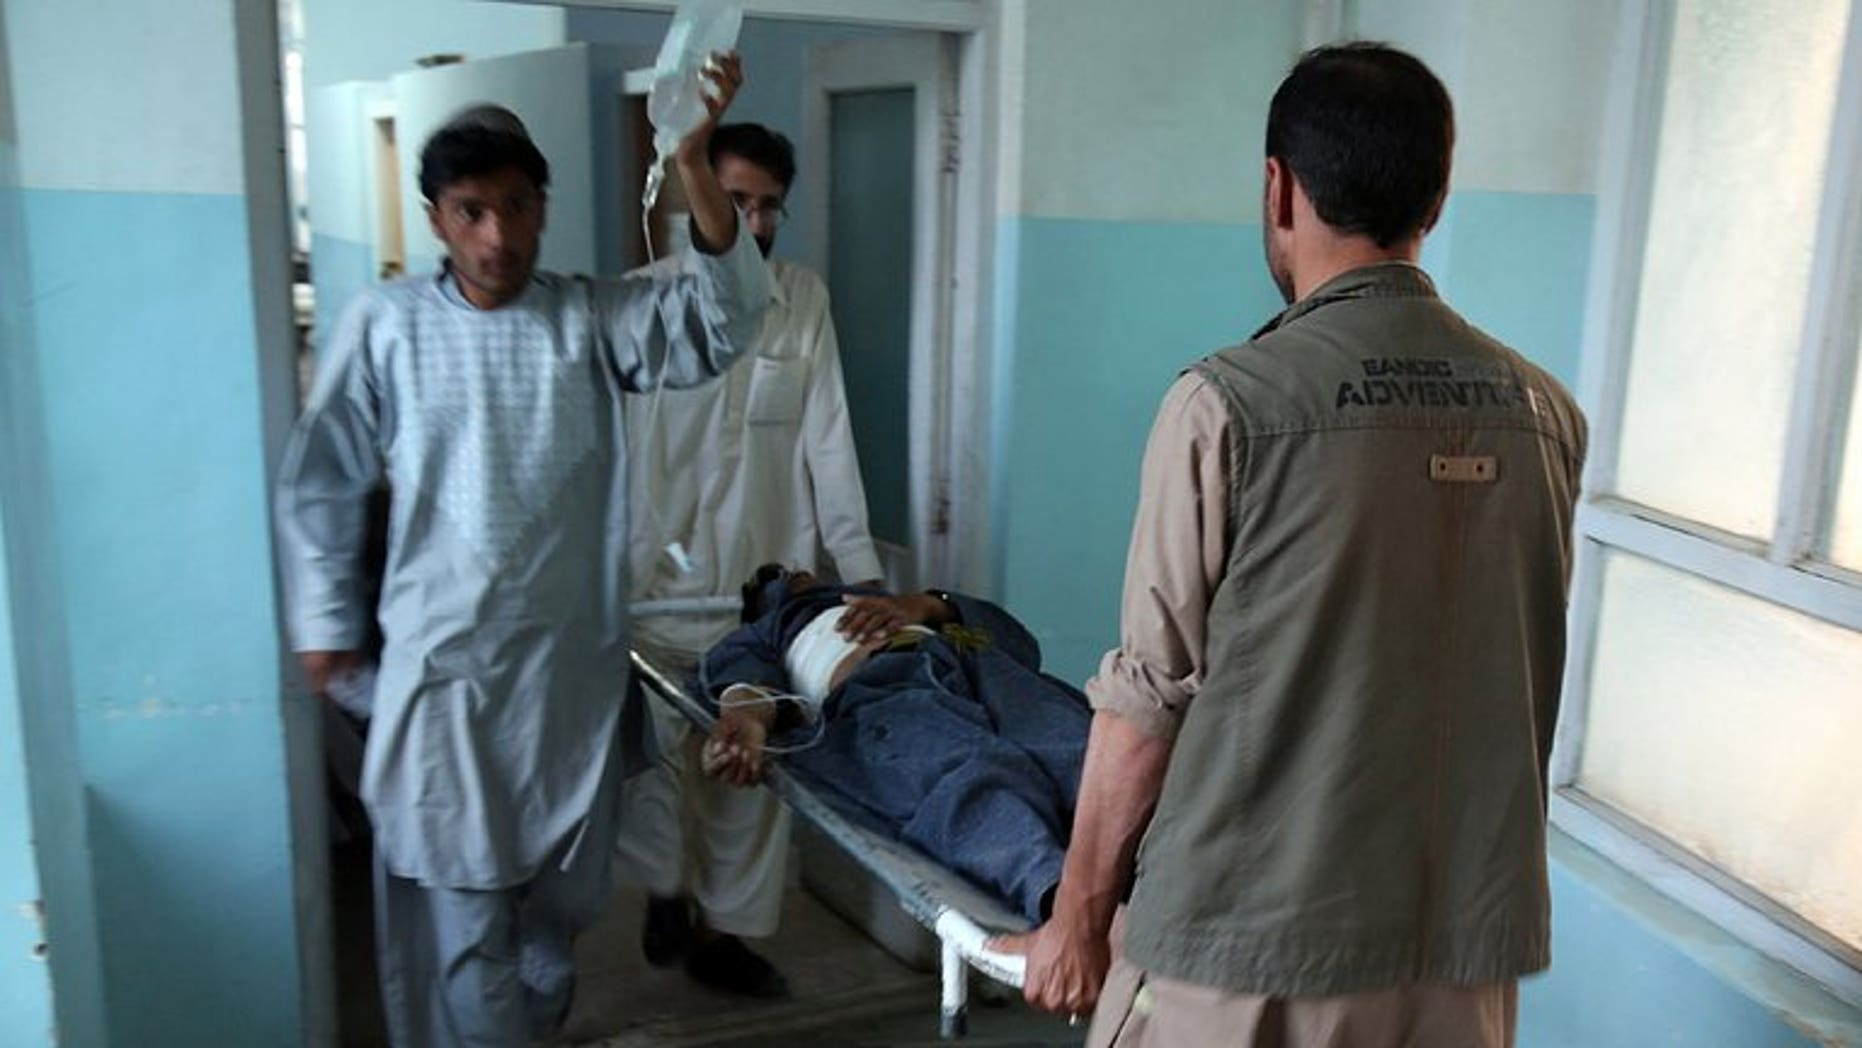 Medical staff carry a wounded man at the main hospital in Ghazni after a suicide attack in Qara Bagh district, on July 26, 2013. A suicide bomber riding a motorcycle struck a busy marketplace and killed seven people, including an anti-Taliban militia leader.